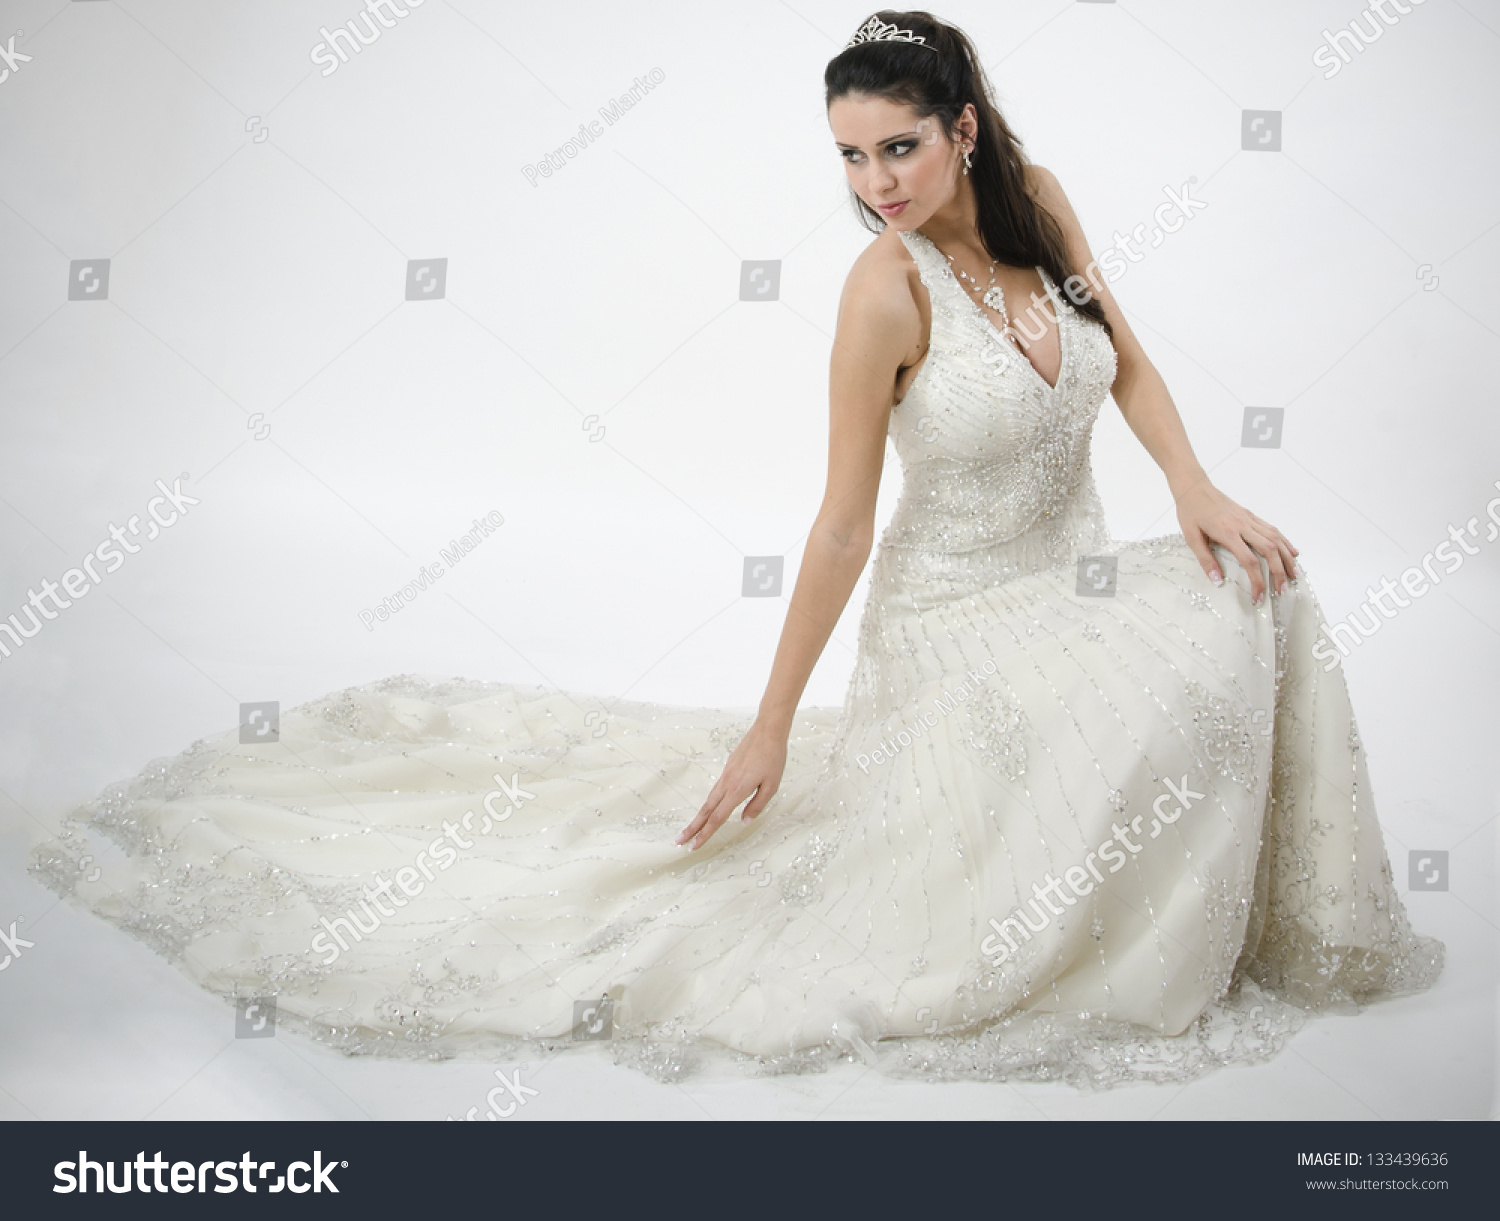 Beautiful Bride In Wedding Dress Sitting Looking Down And Touches The: Haute Couture Wedding Dress Sitting At Reisefeber.org